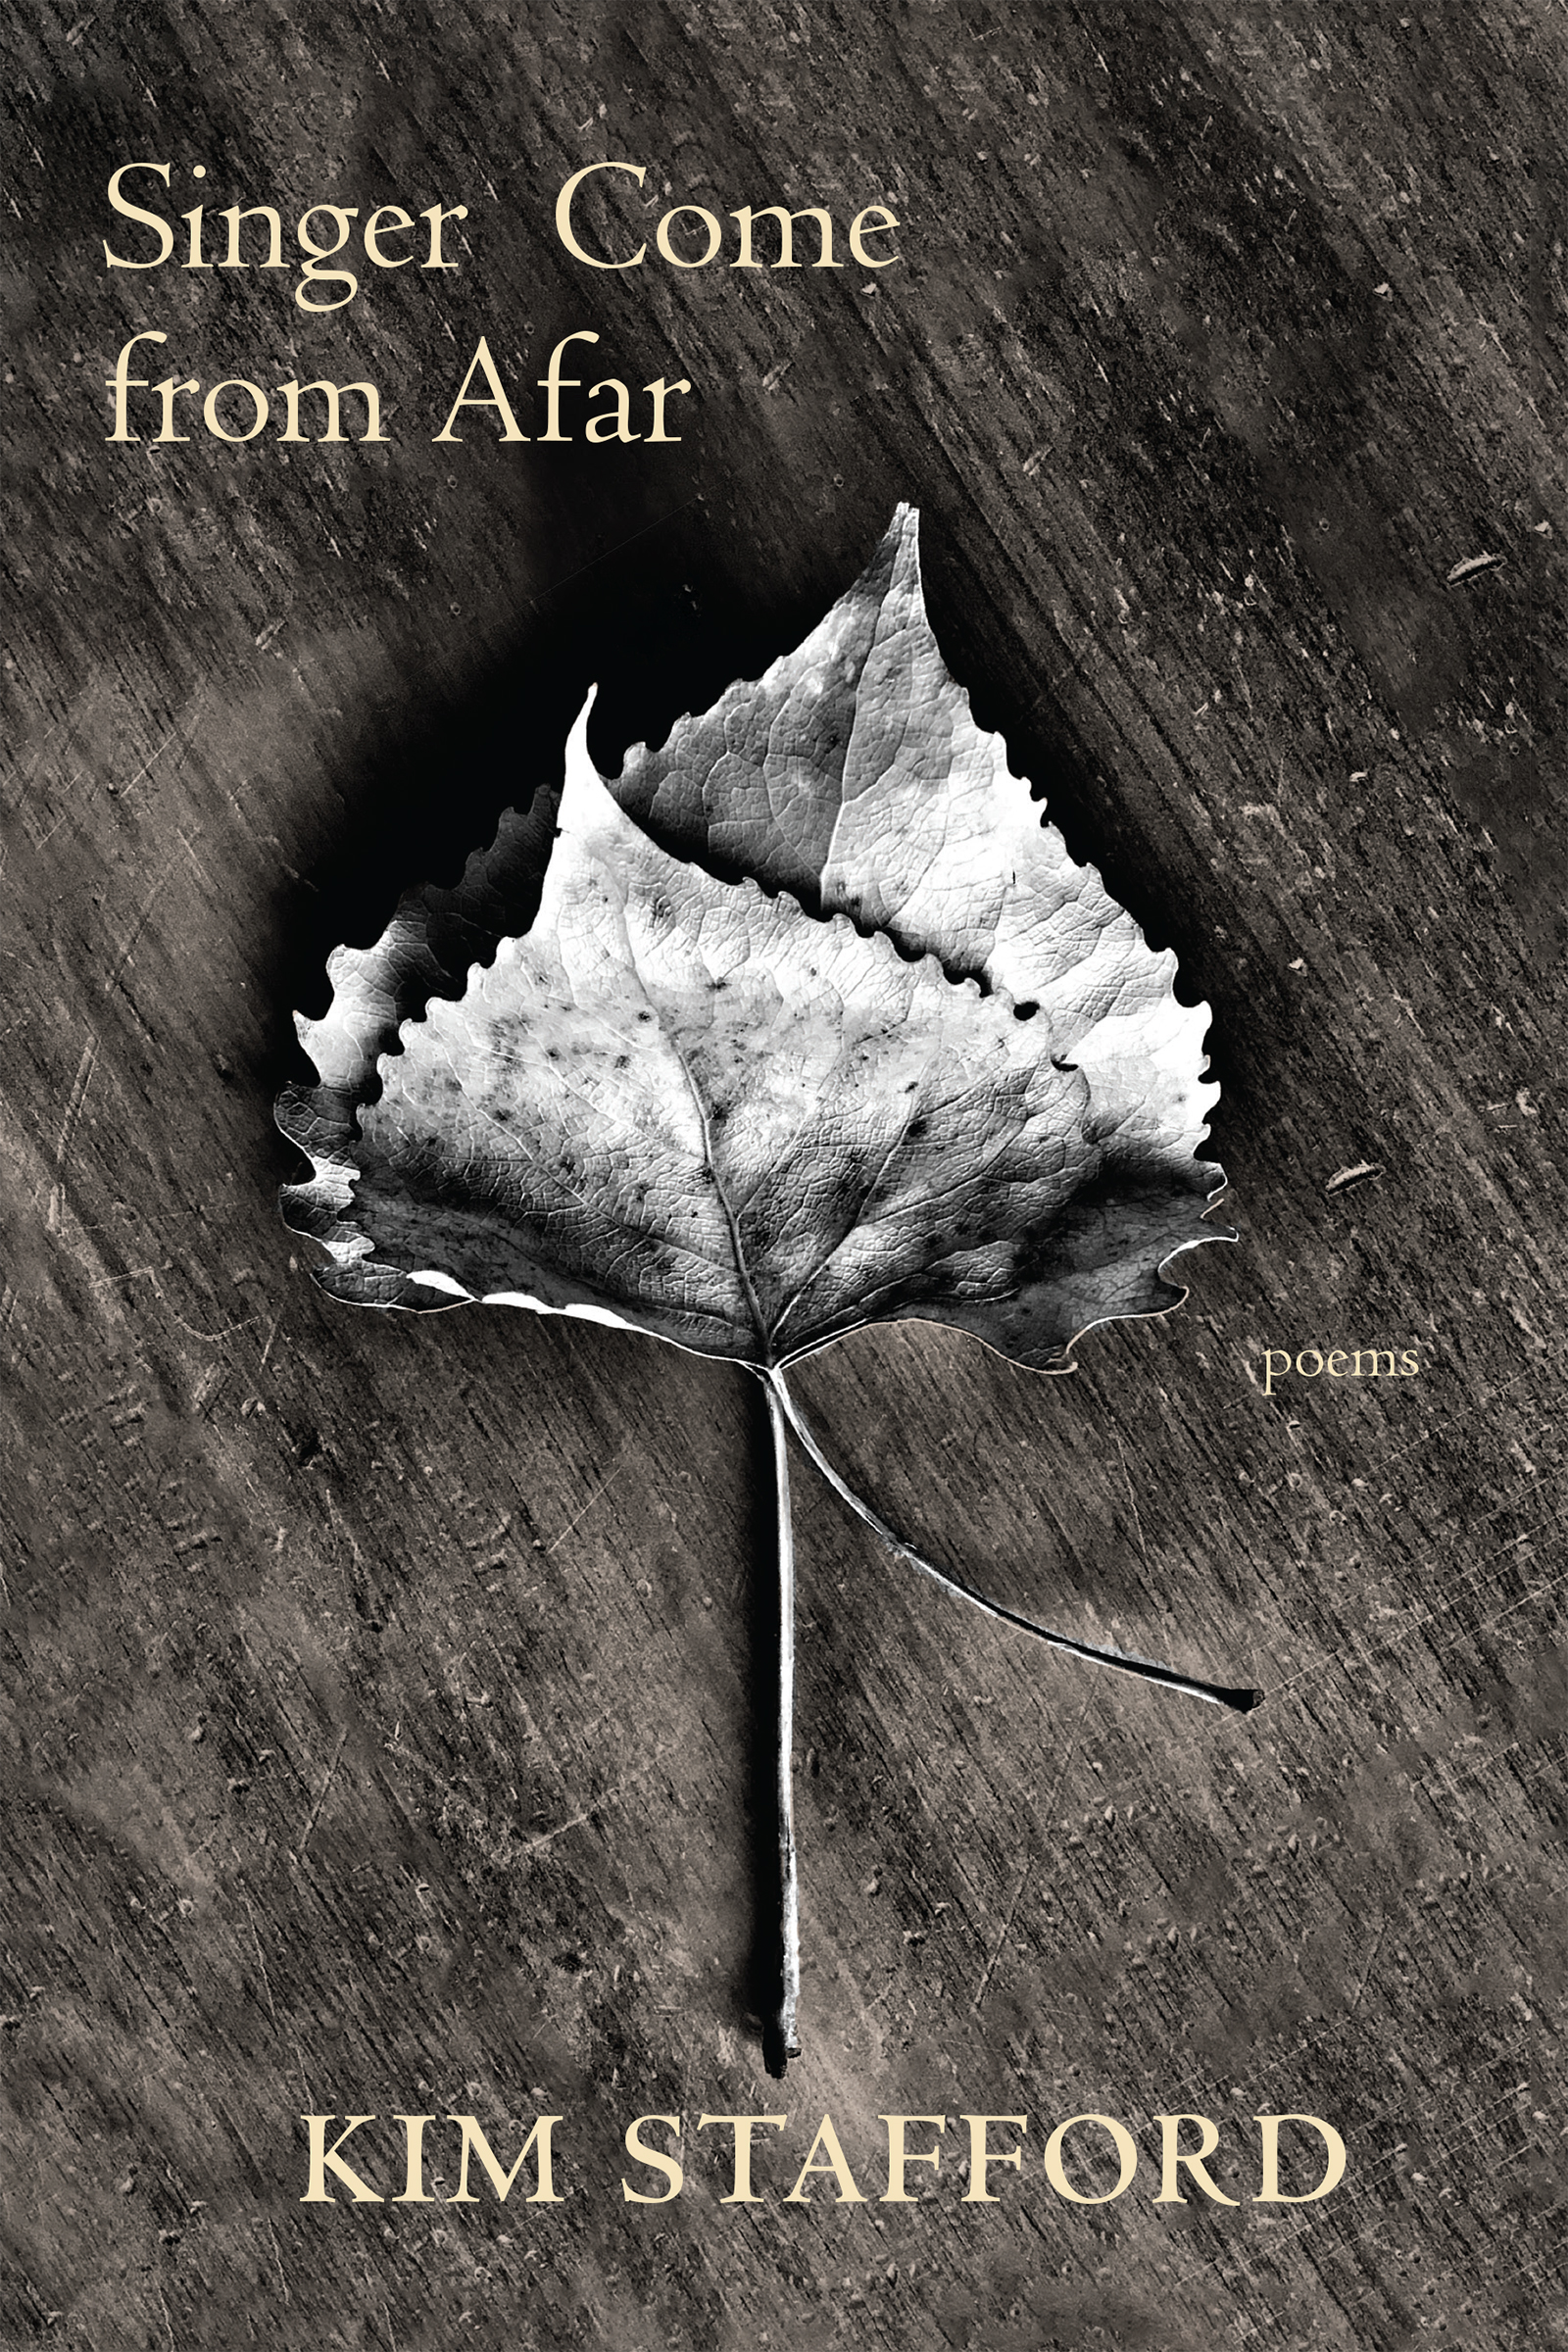 Wooden background with a white leaf at the center and yellow text that reads Singer Come from Afar by Kim Stafford.